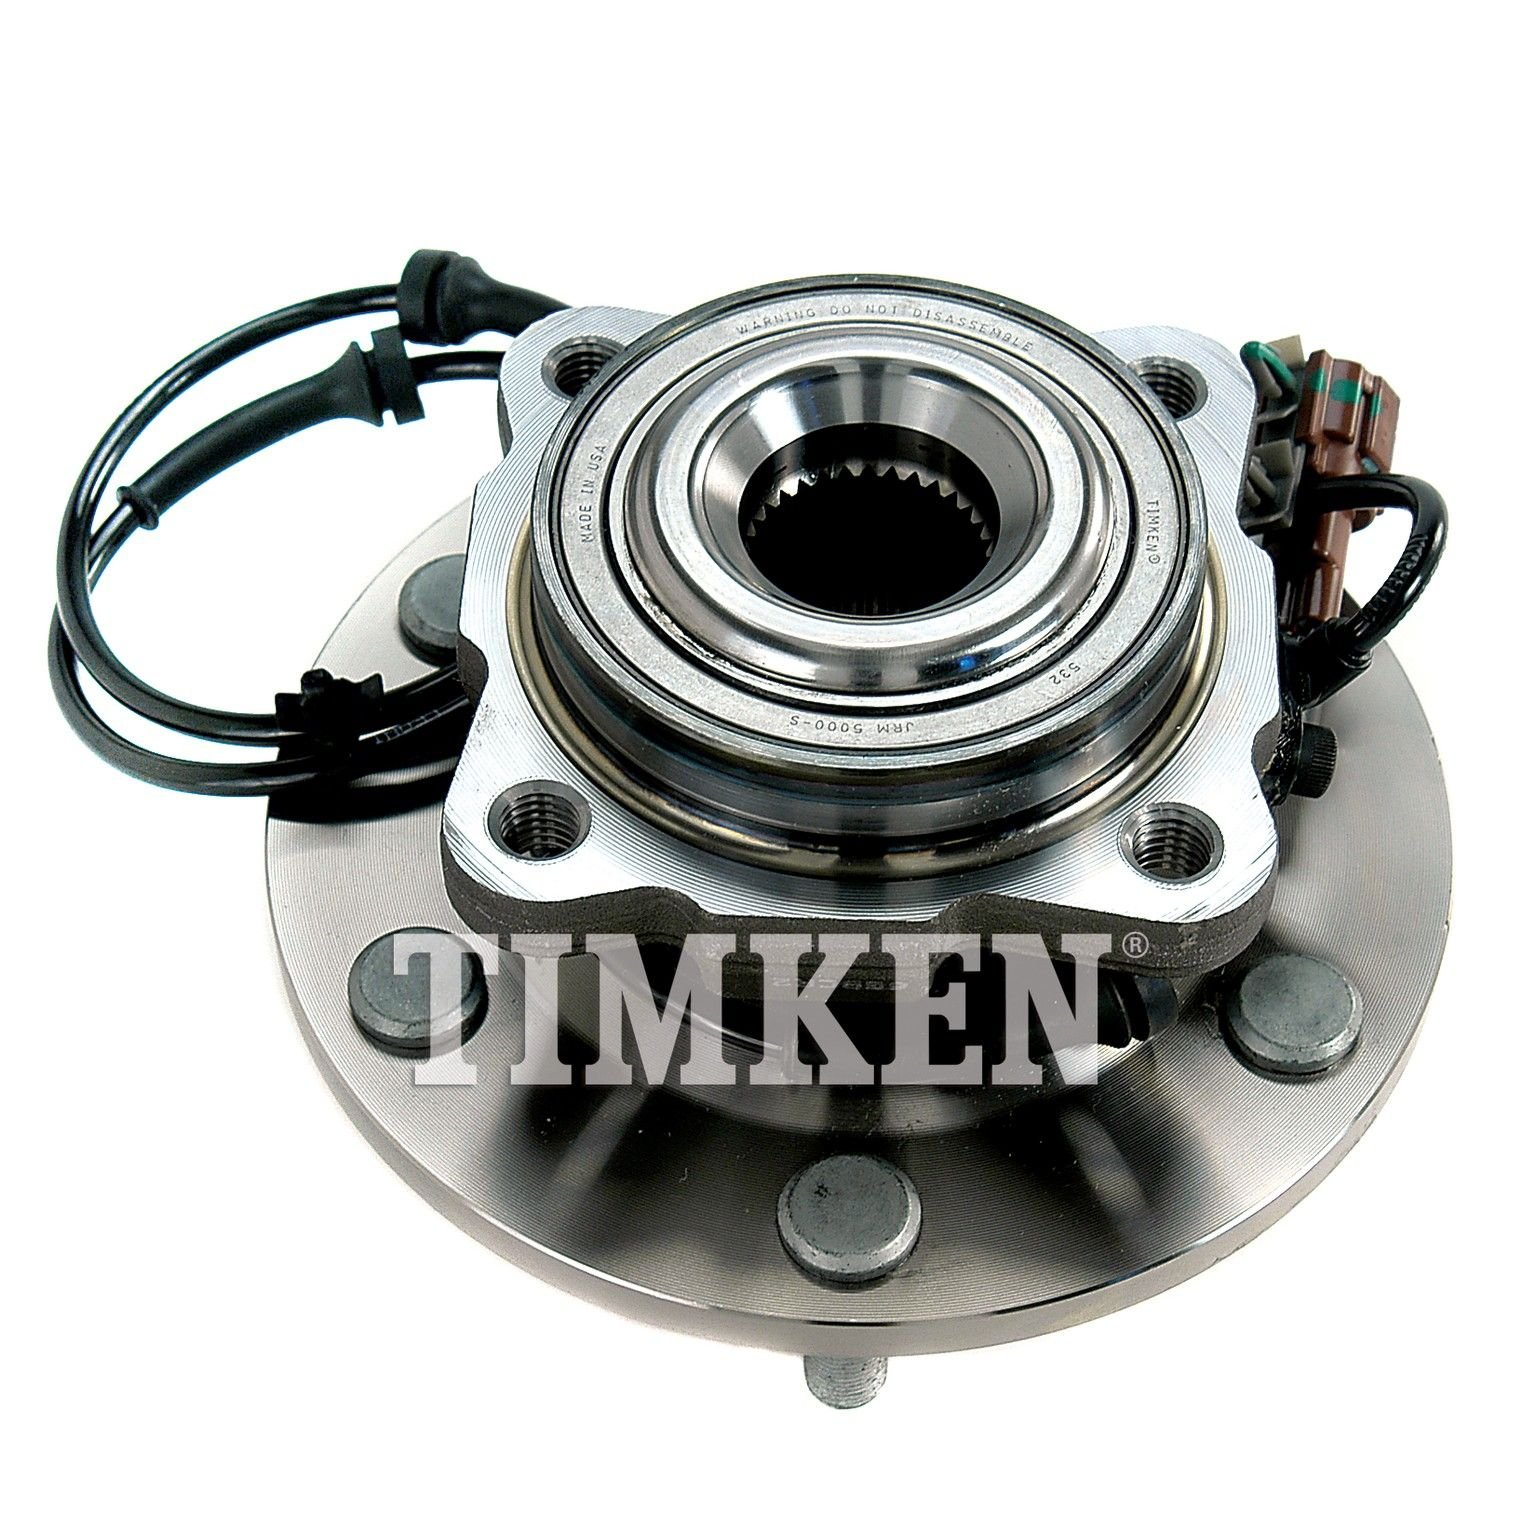 Infiniti QX56 Wheel Bearing and Hub Assembly Replacement